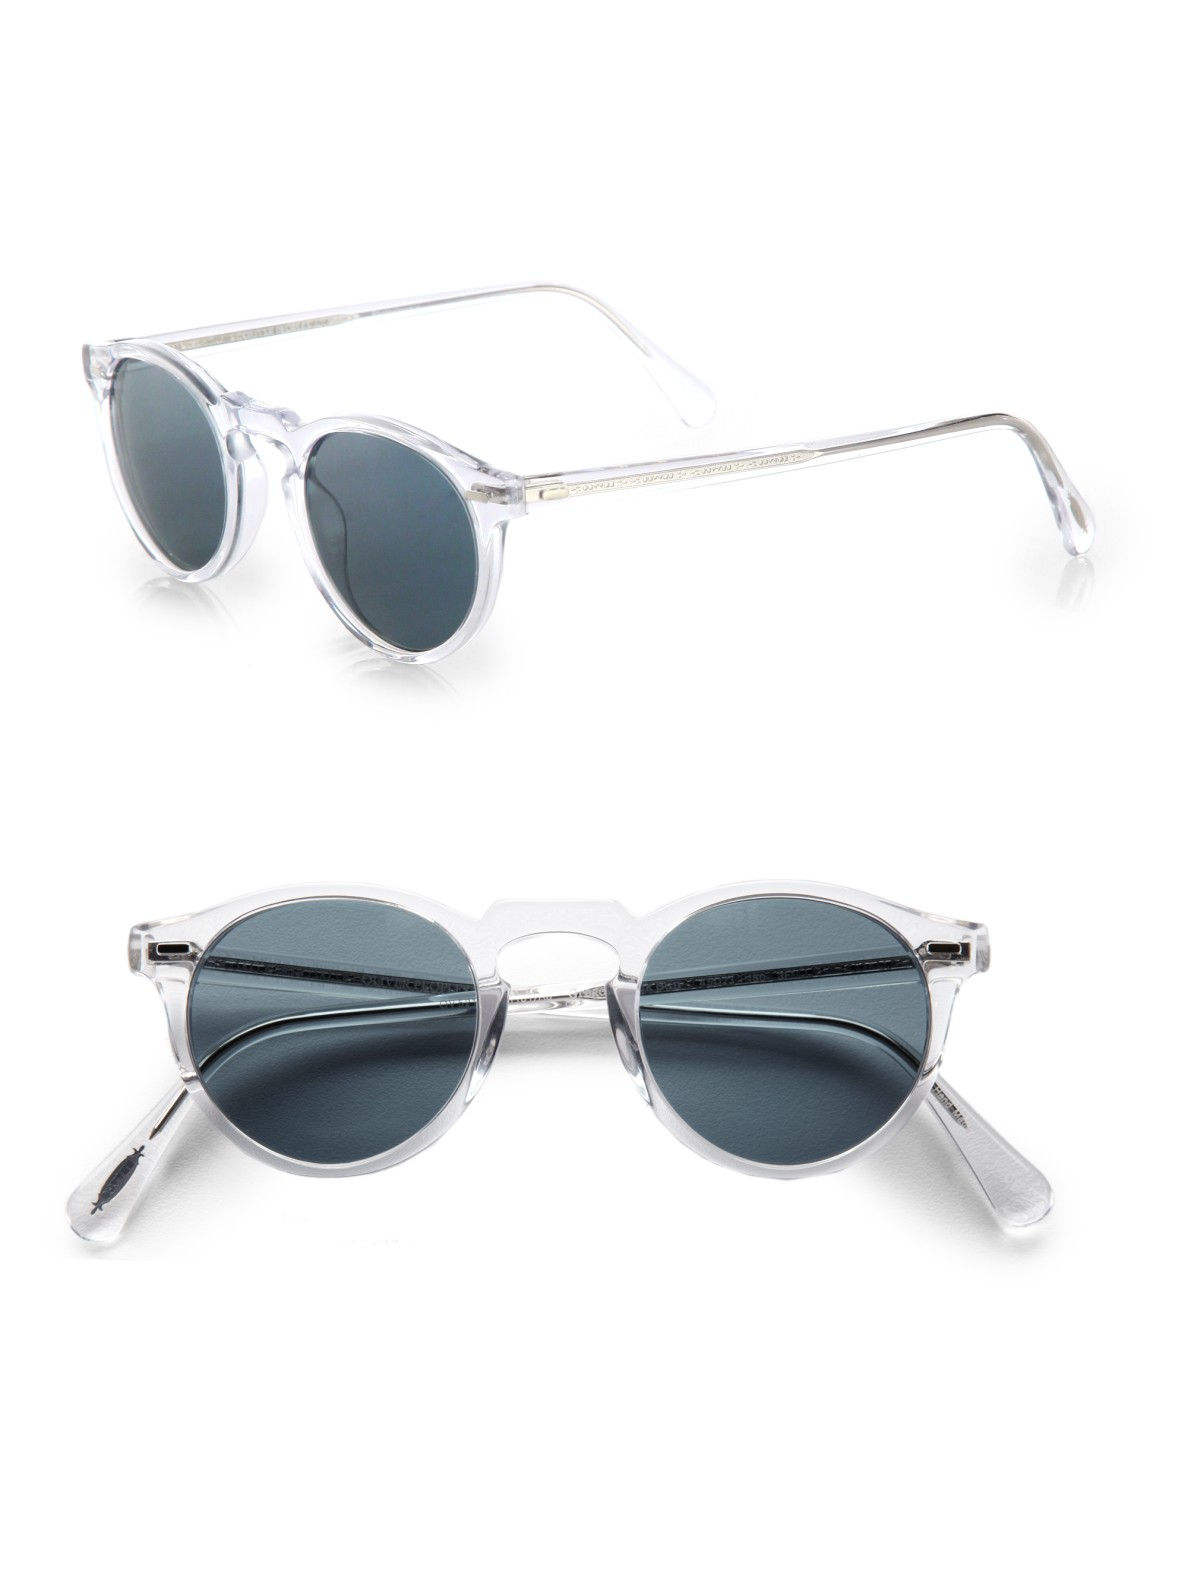 1c65ce27f16 Lyst - Oliver Peoples Gregory Peck Sunglasses in Blue for Men